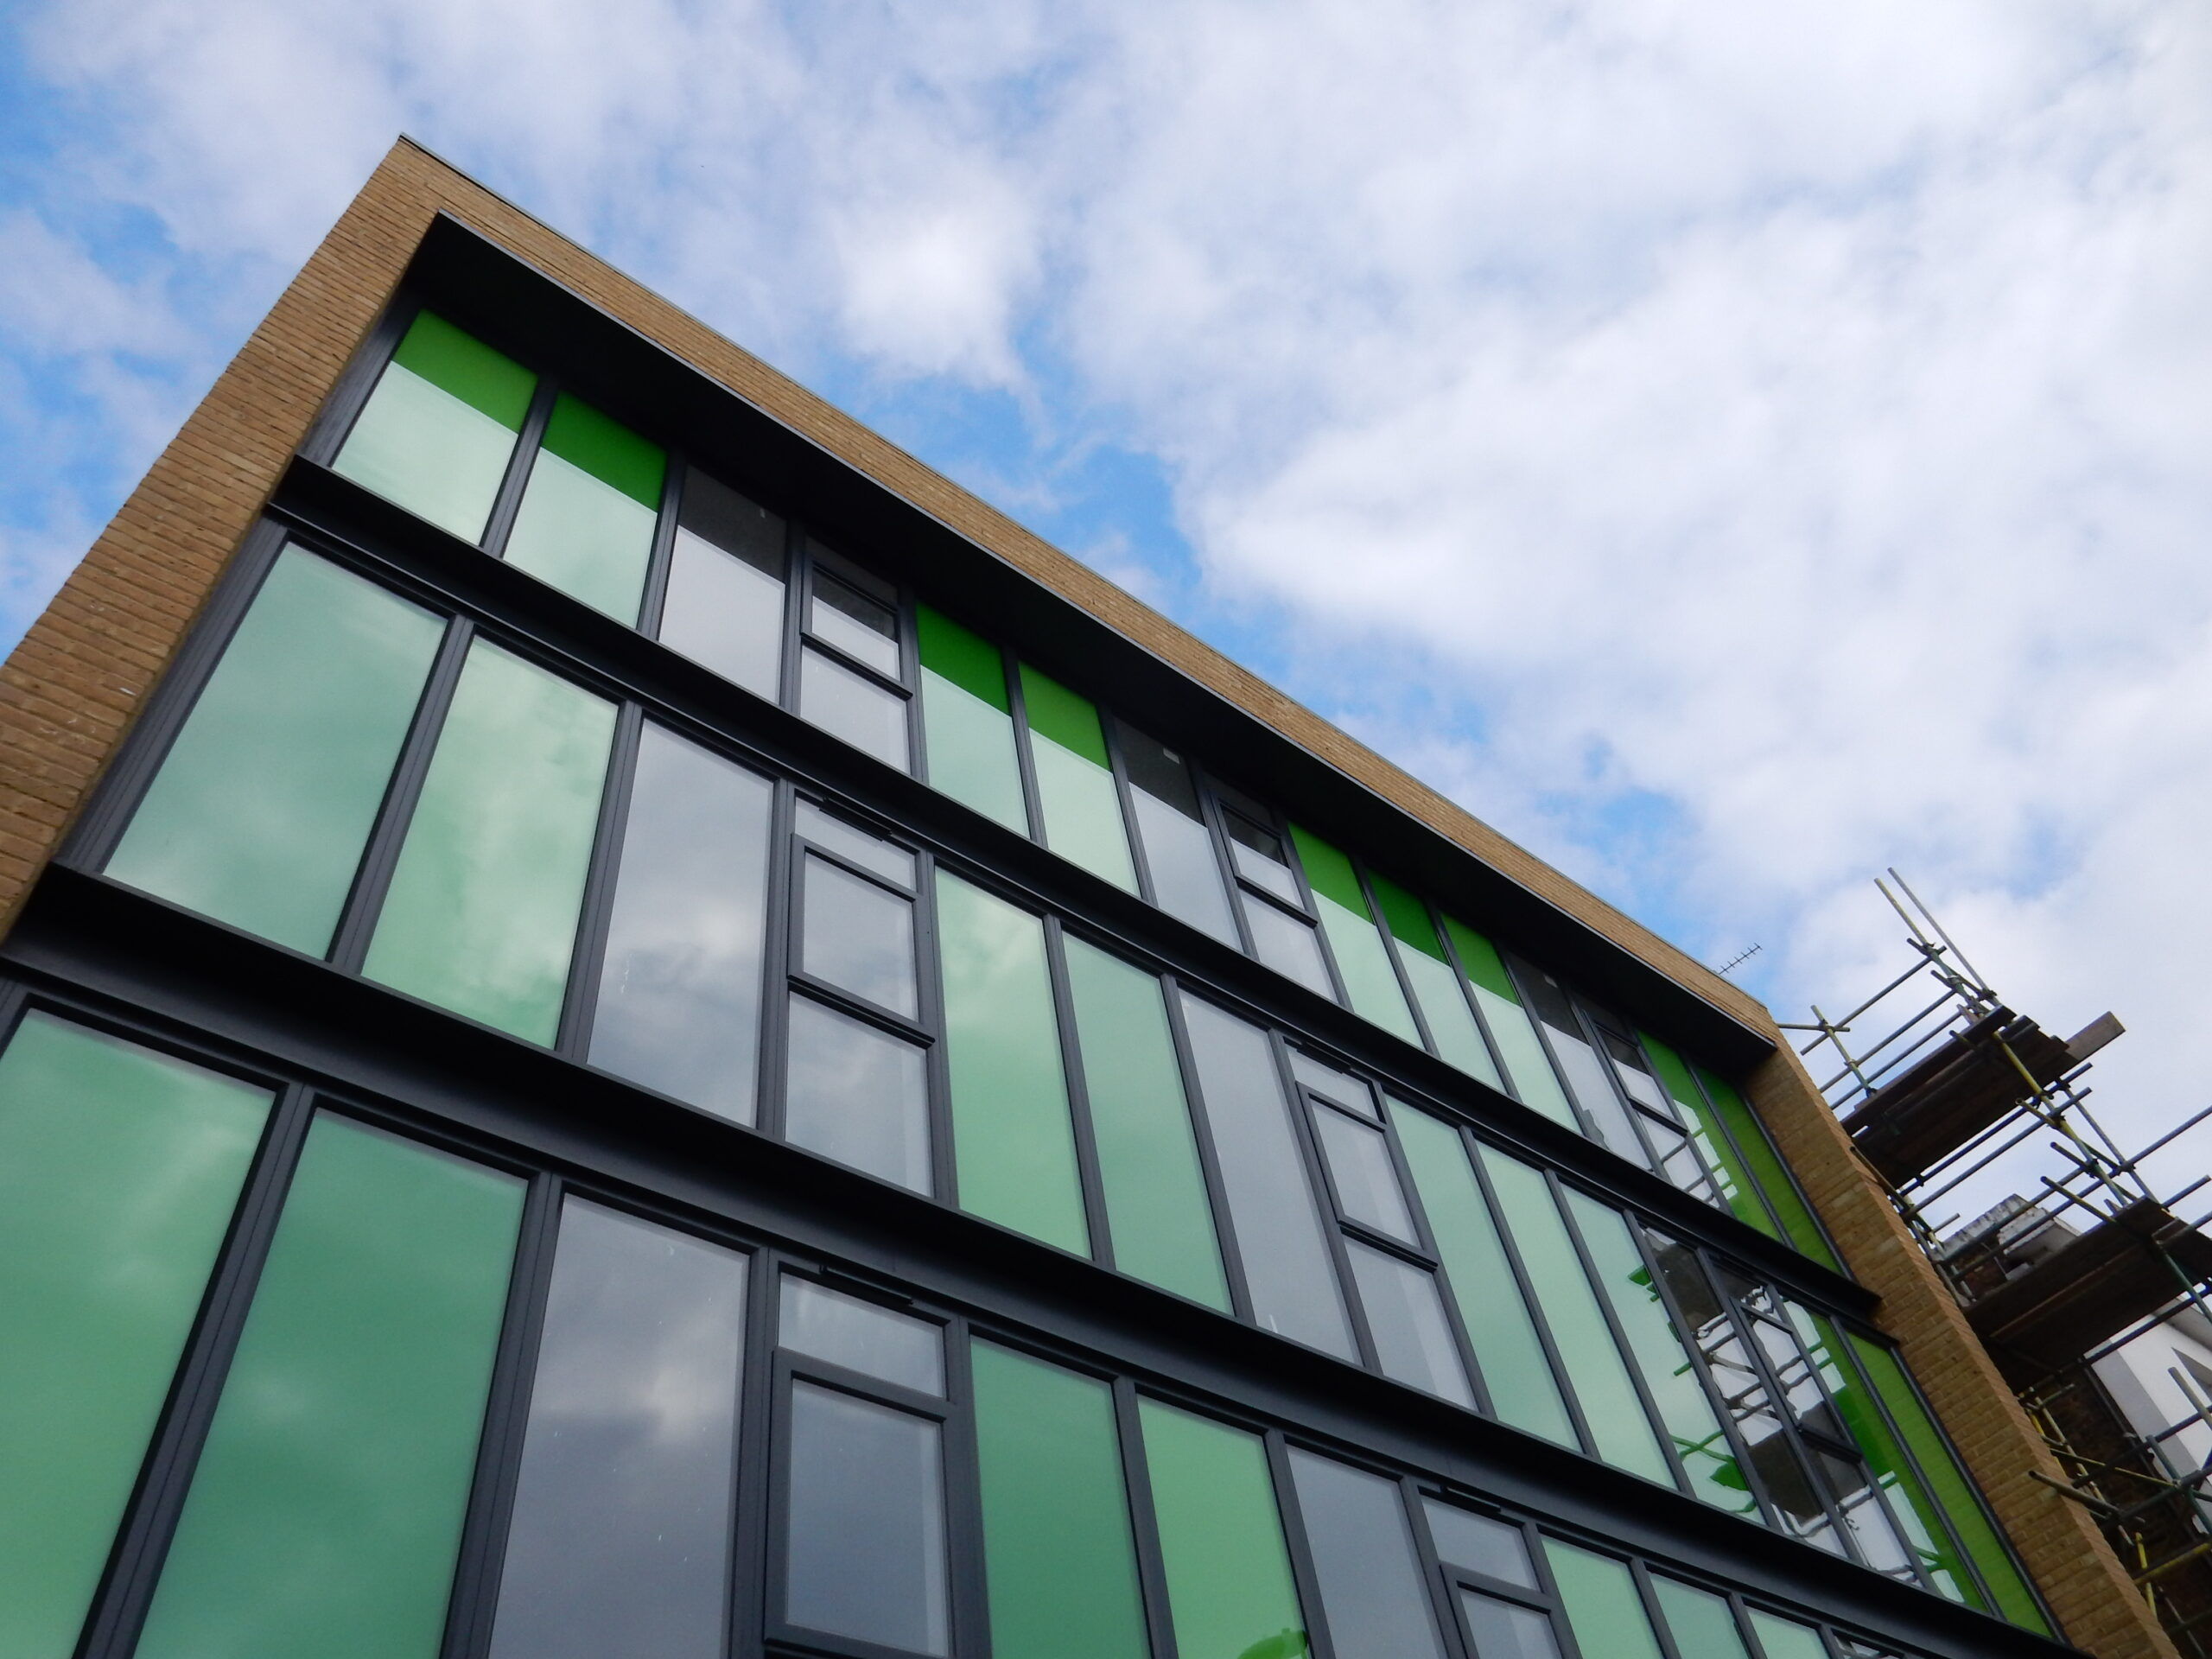 New build sheltered housing building, Wandsworth, London